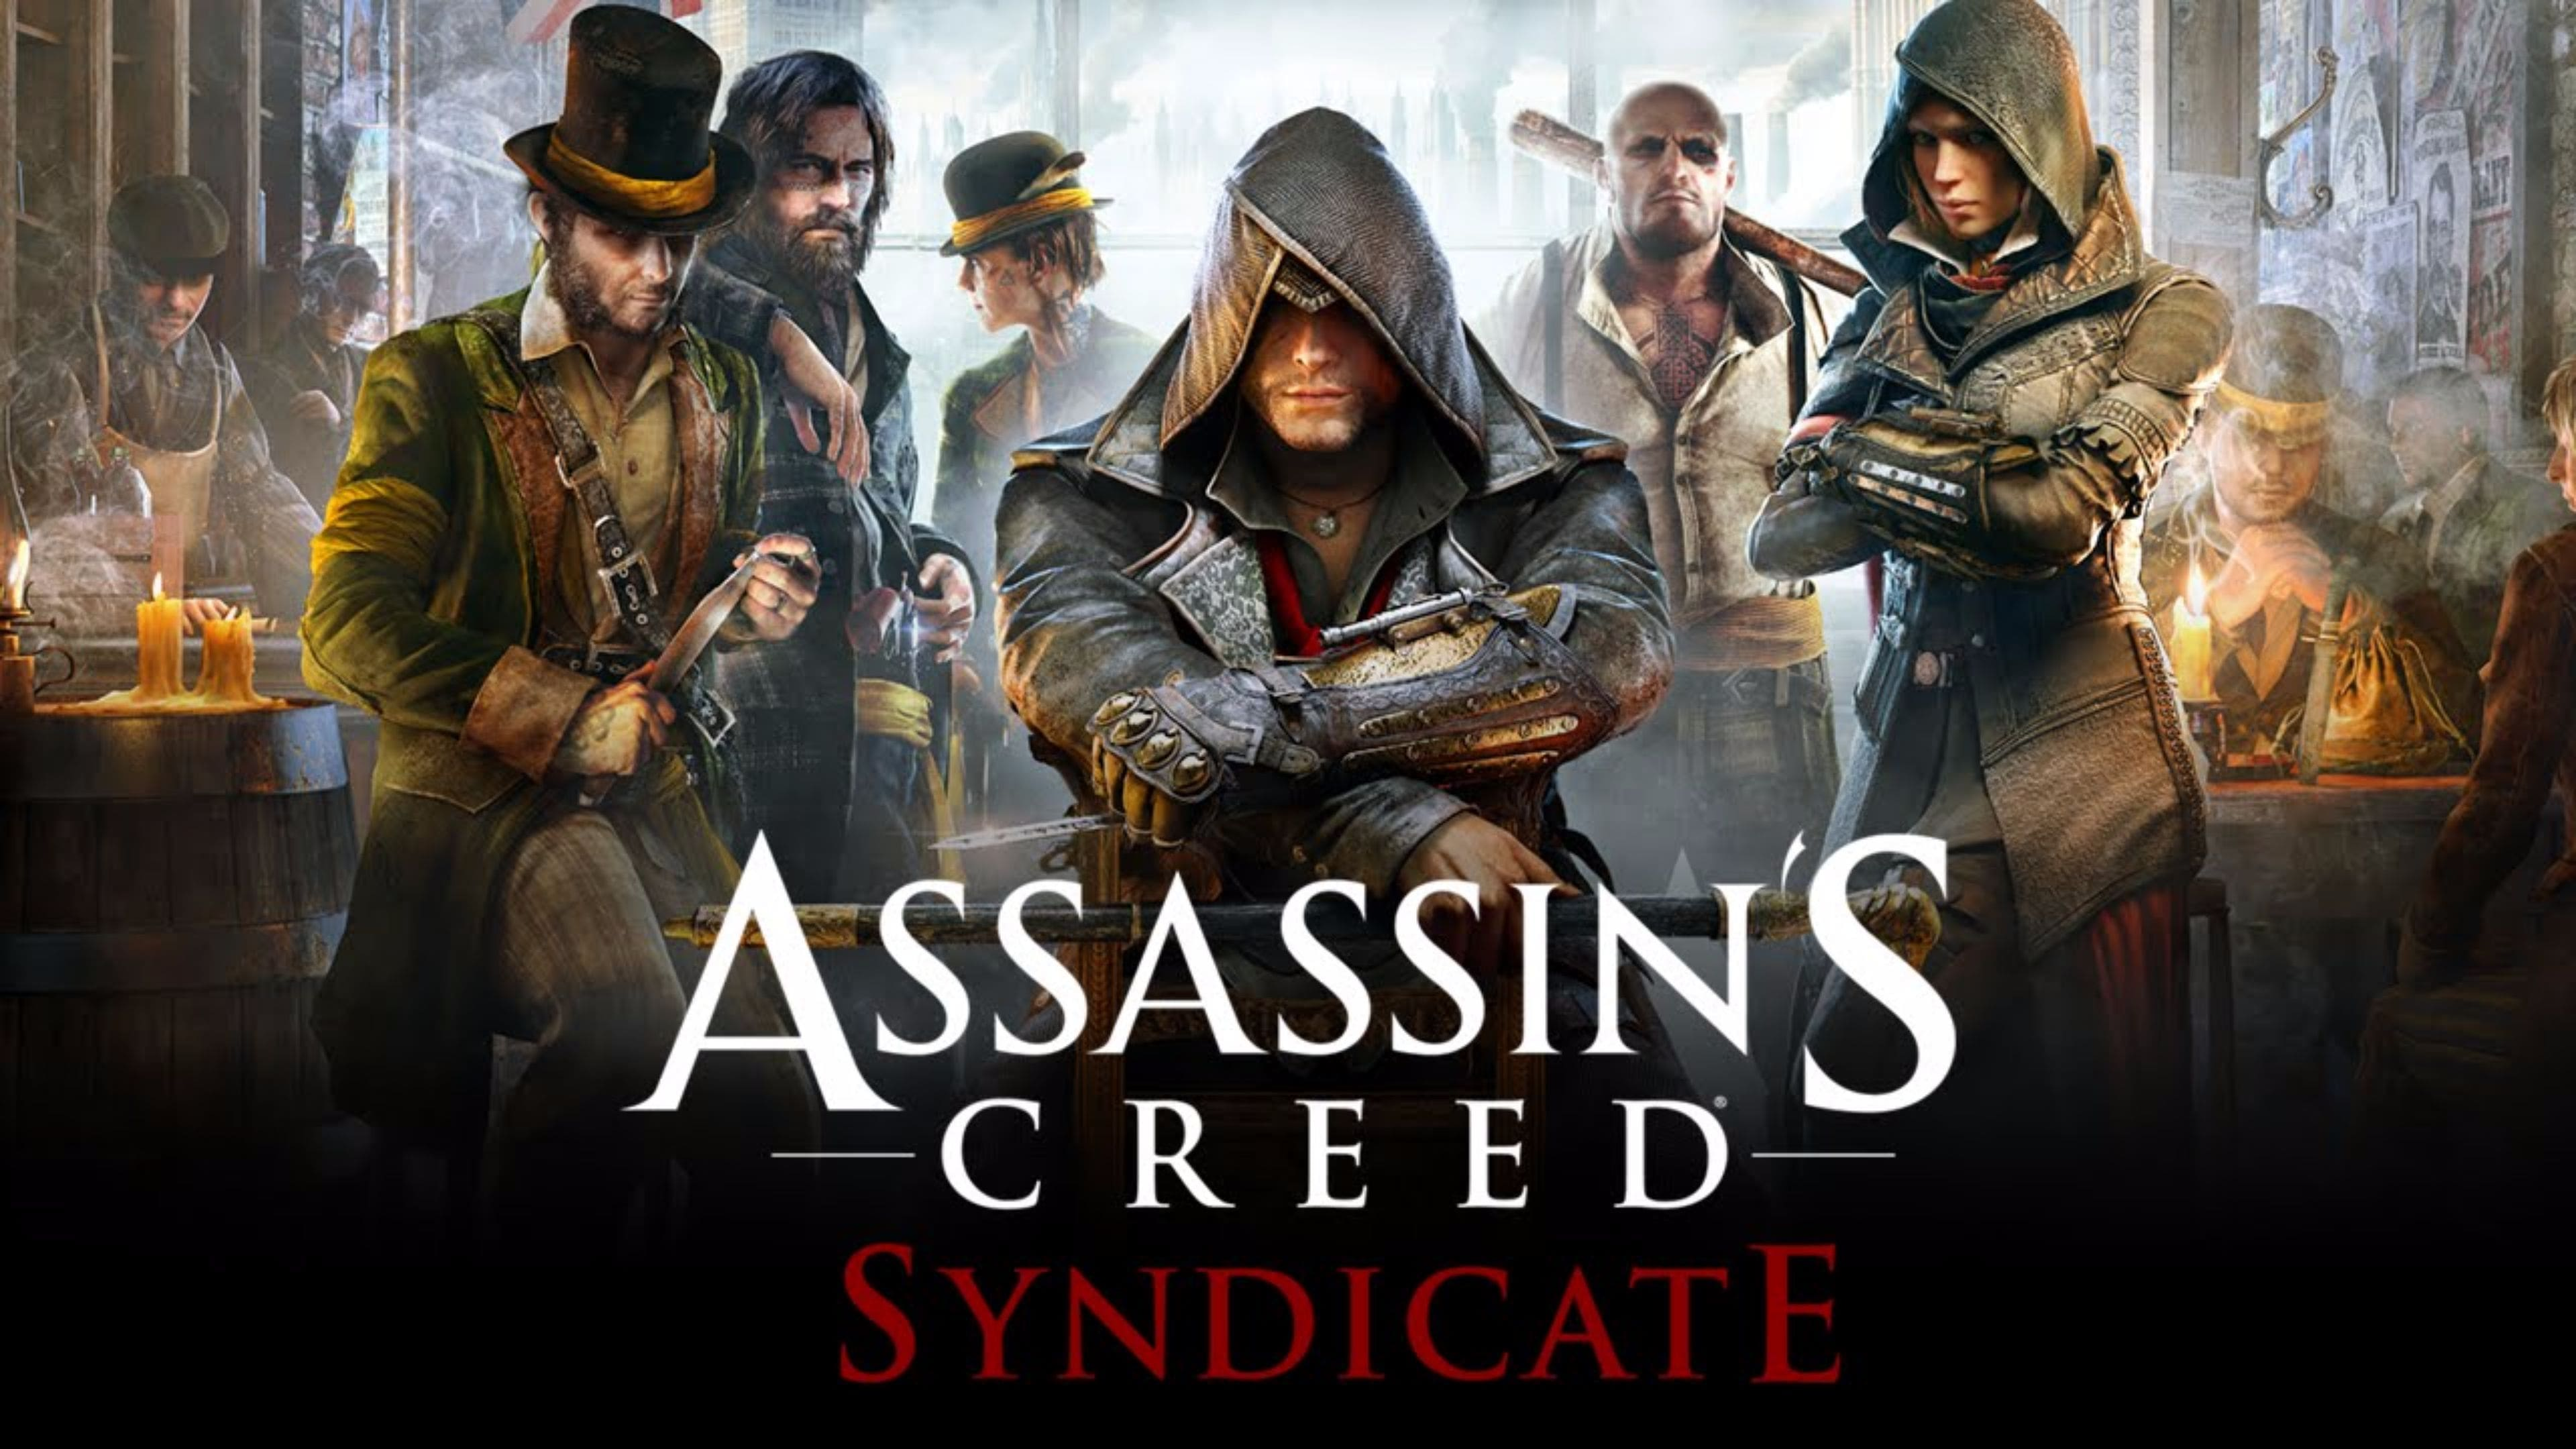 Assassins Creed Syndicate Hd Wallpapers 7wallpapersnet